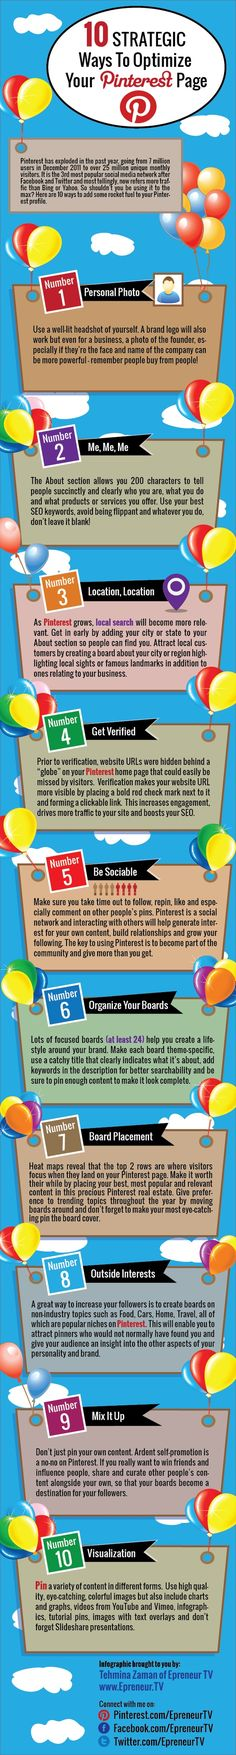 Optimize Your #Pinterest Profile